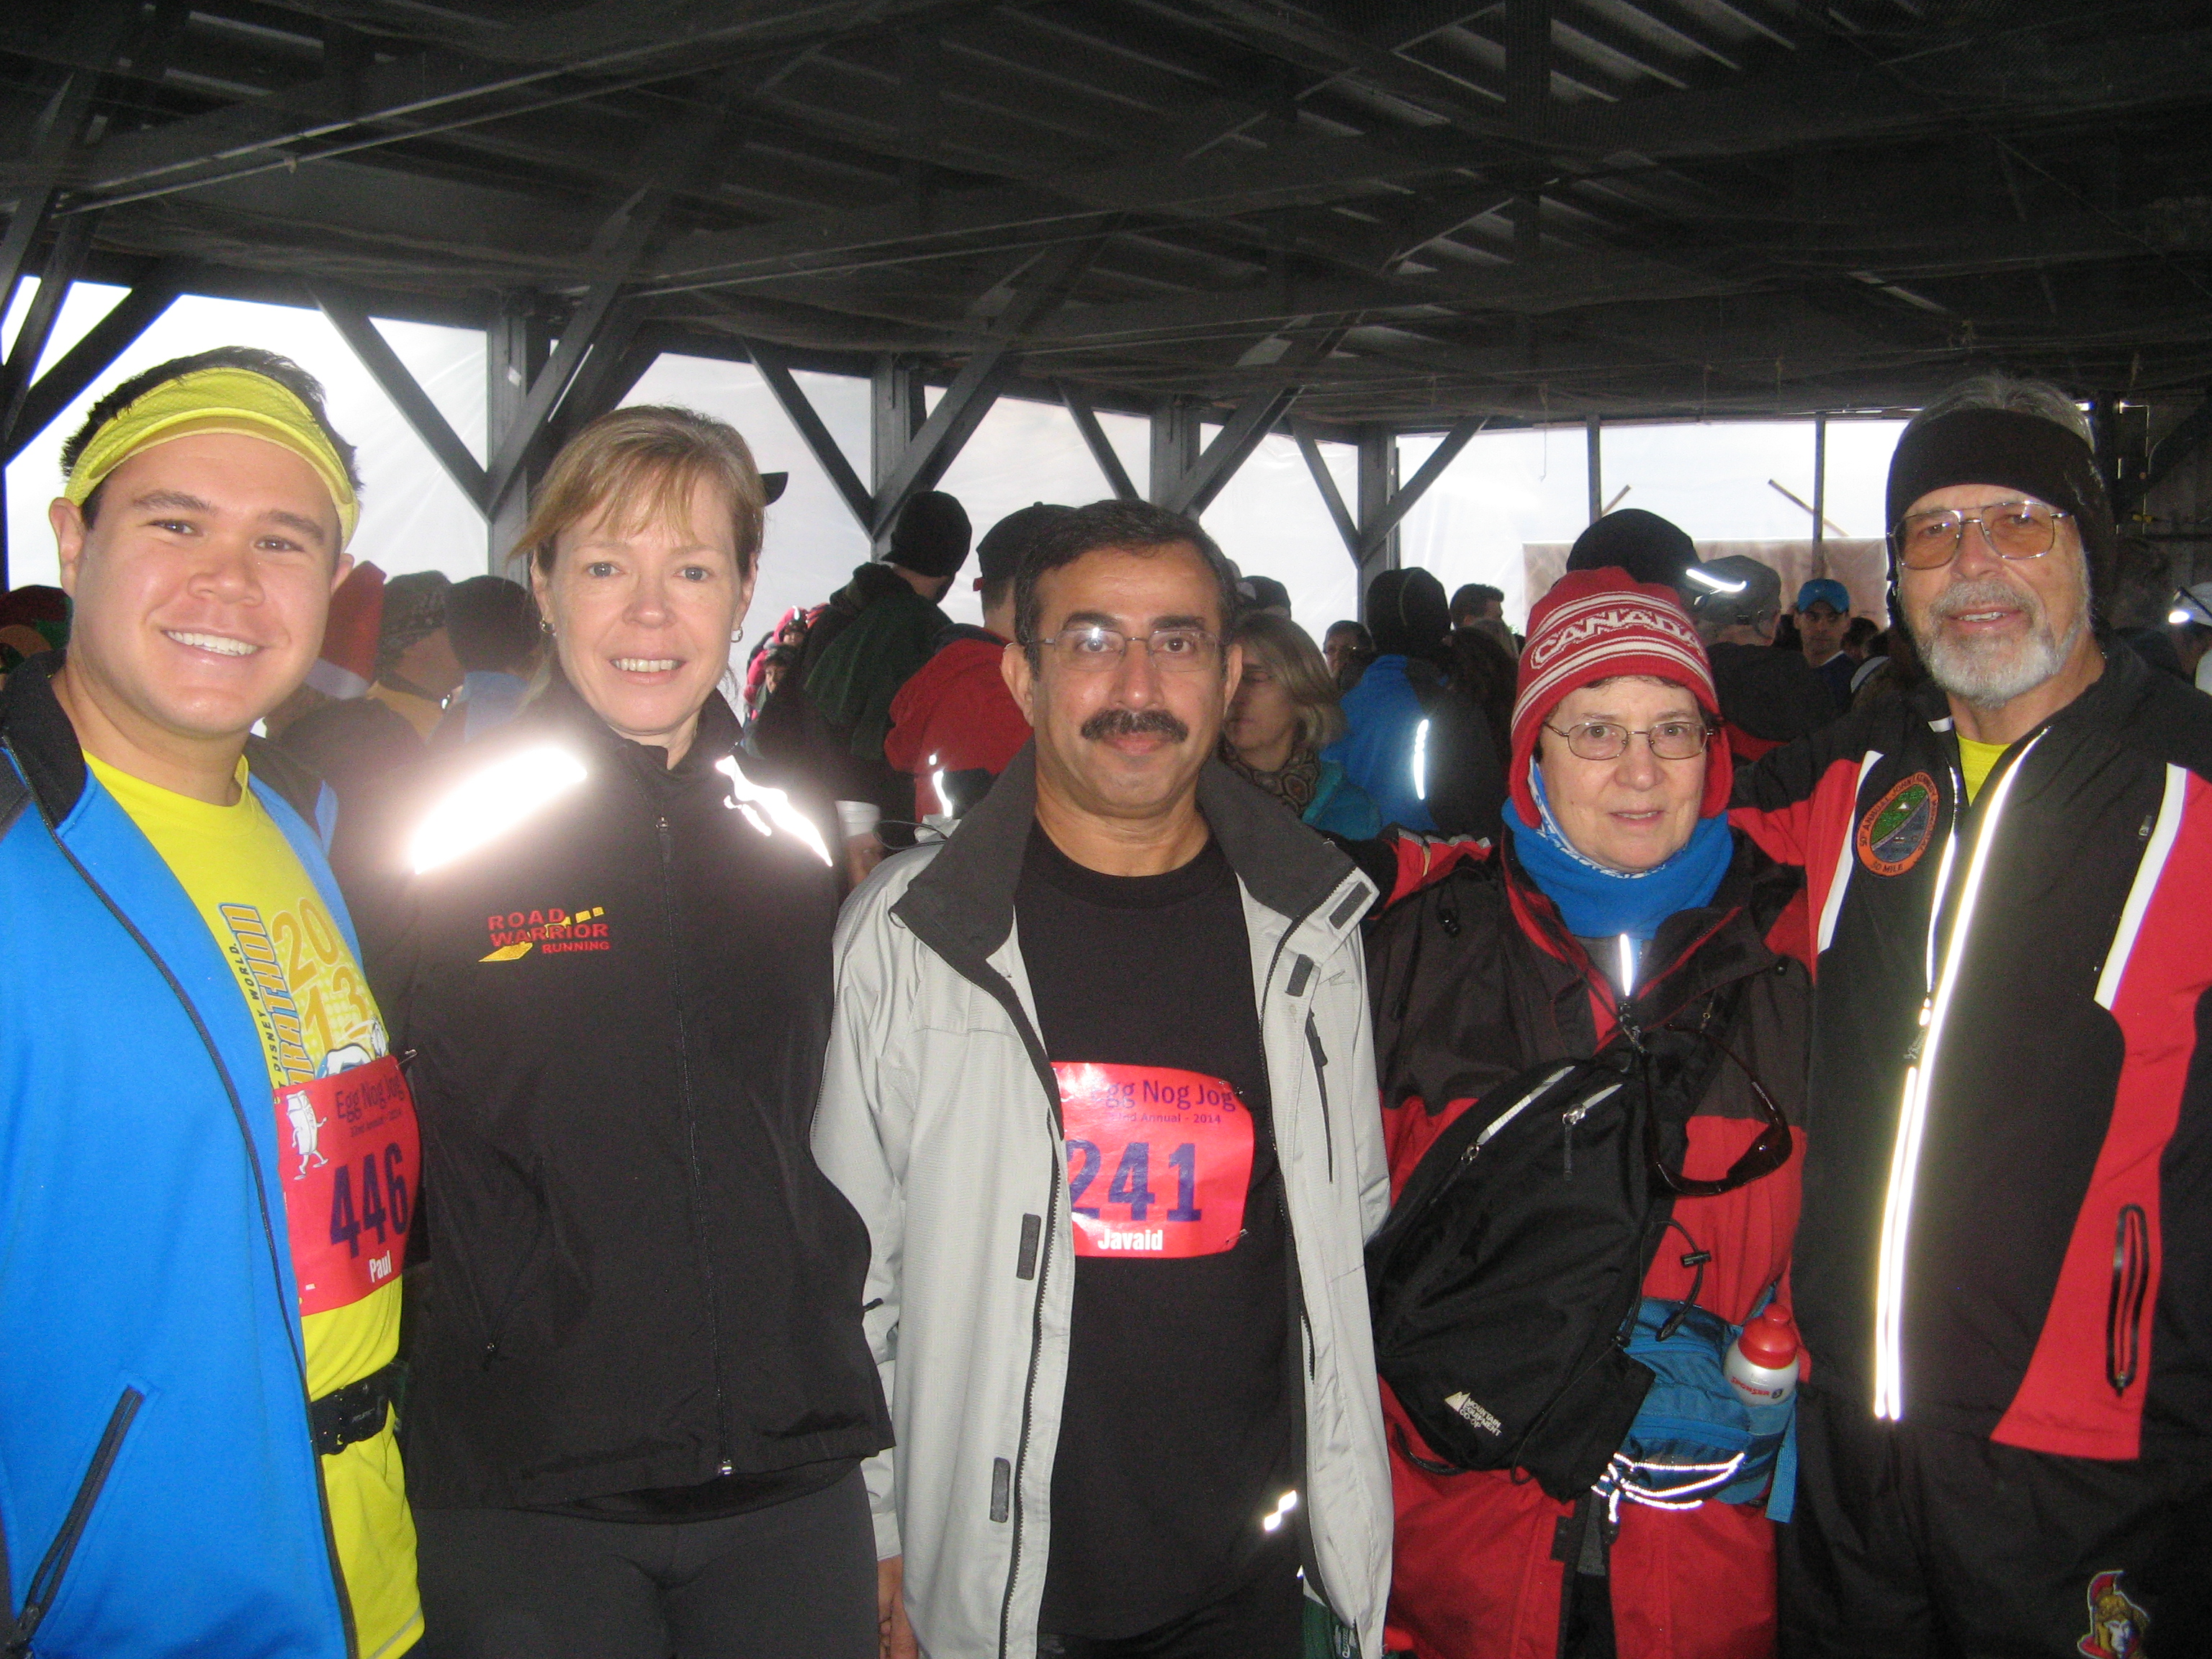 Group shot before the Egg Nog Jog. L-R Me, Robyn, Javaid, ???, Ken (image credit Javaid)